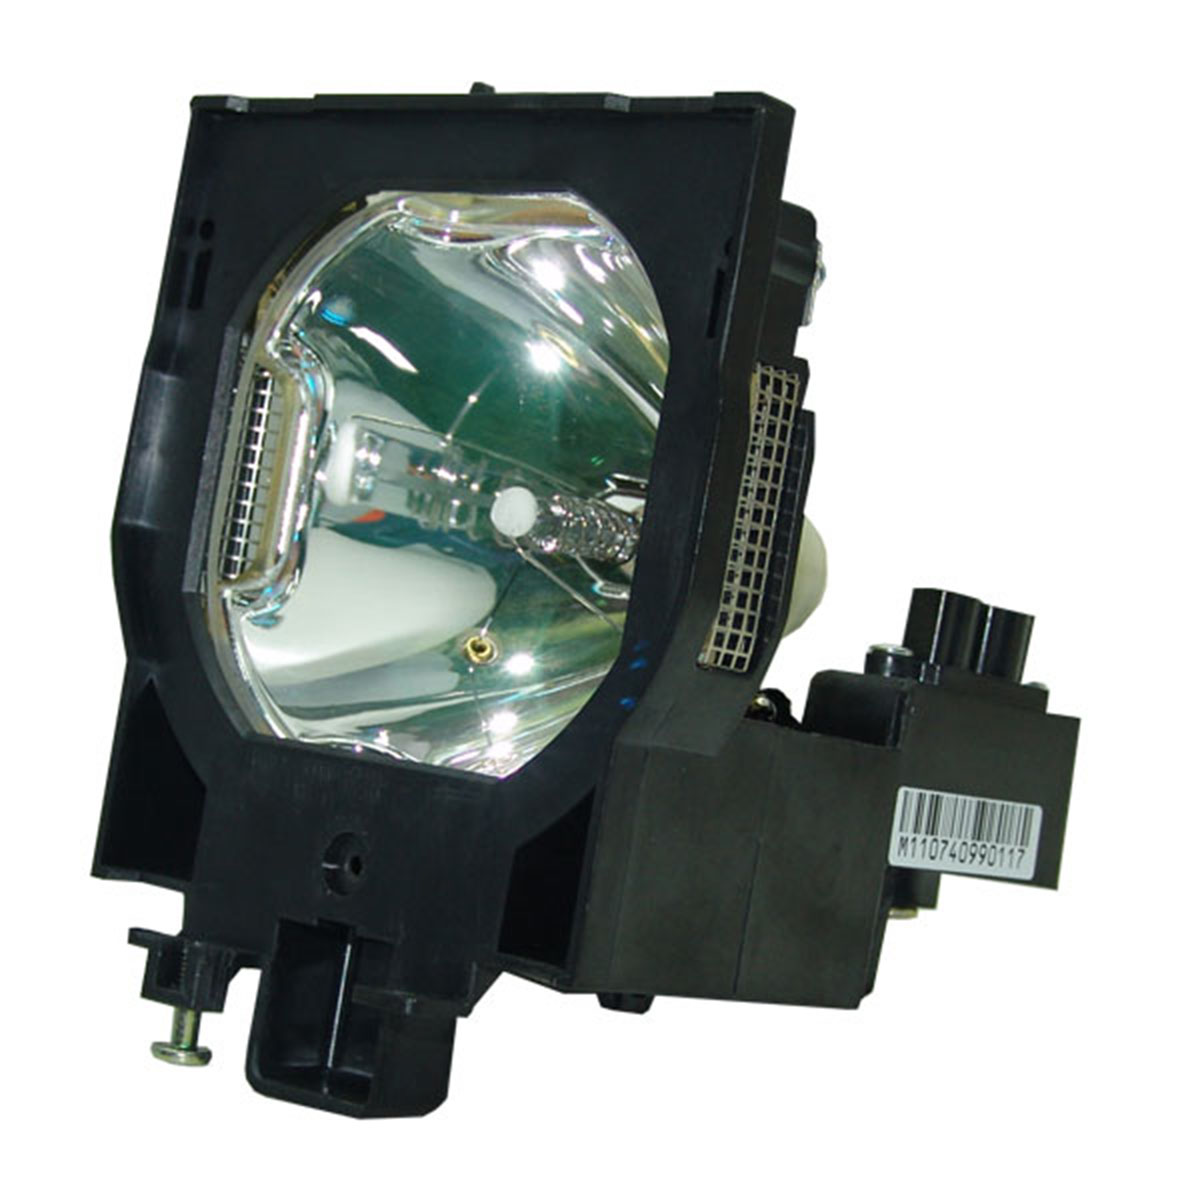 Lamp Housing For Eiki 610327 4928 Projector DLP LCD Bulb